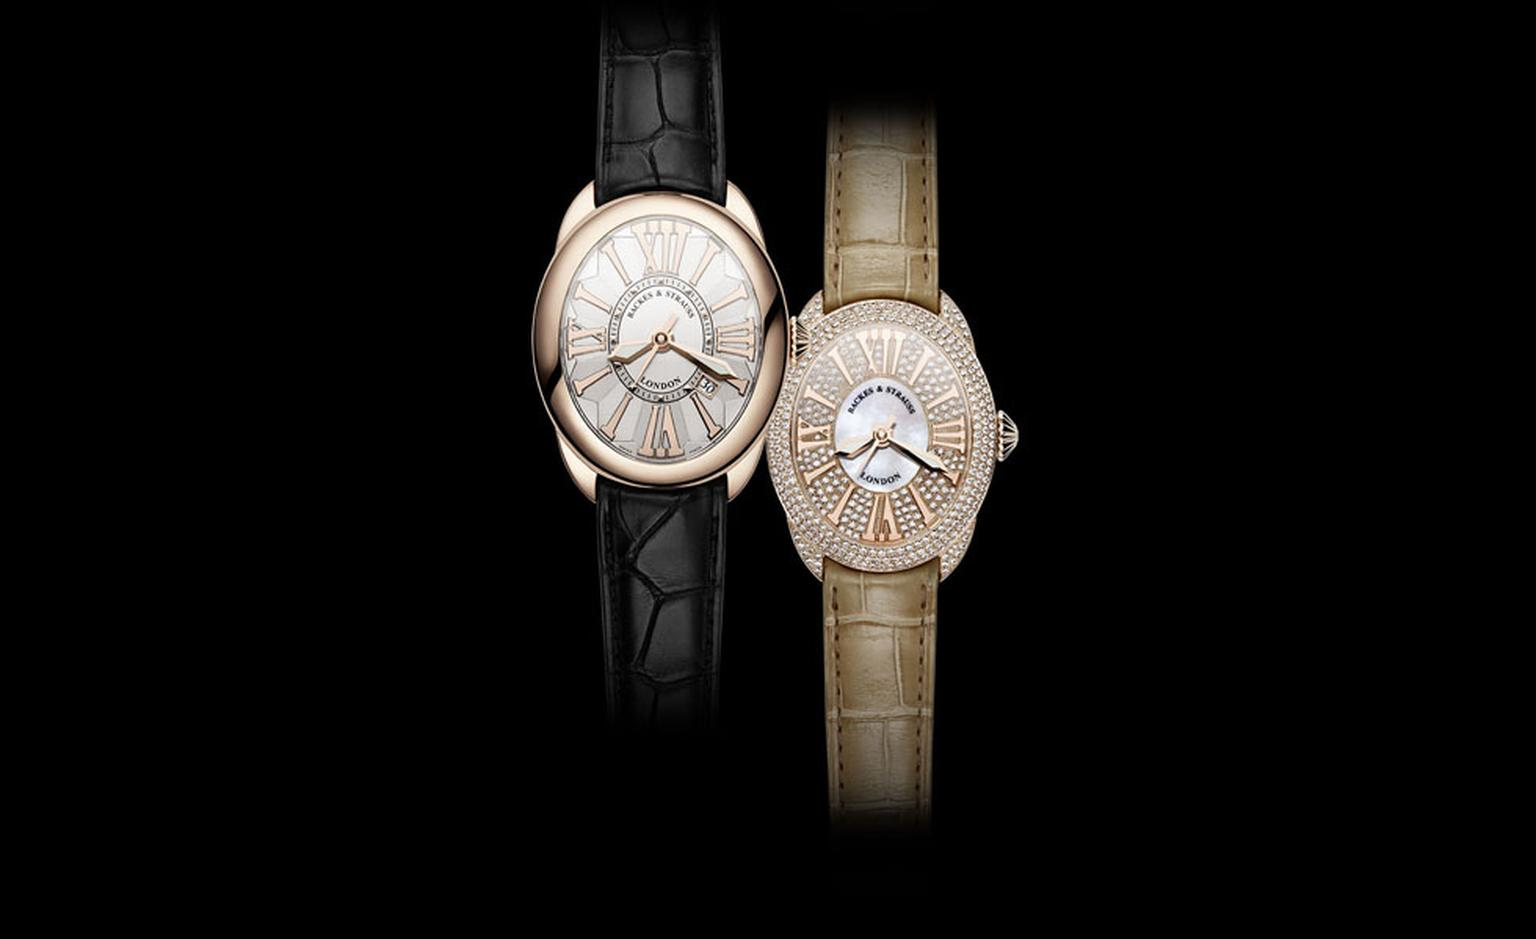 Backes & Strauss. Left: The Regent Classic 4047, The Jewel in the Crown is the only diamond on the Classic, black alligator skin strap. Price from £15,860.00. Right: The Regent Diamond Dial 3643 with  diamonds and mother of pearl. Price from £30...